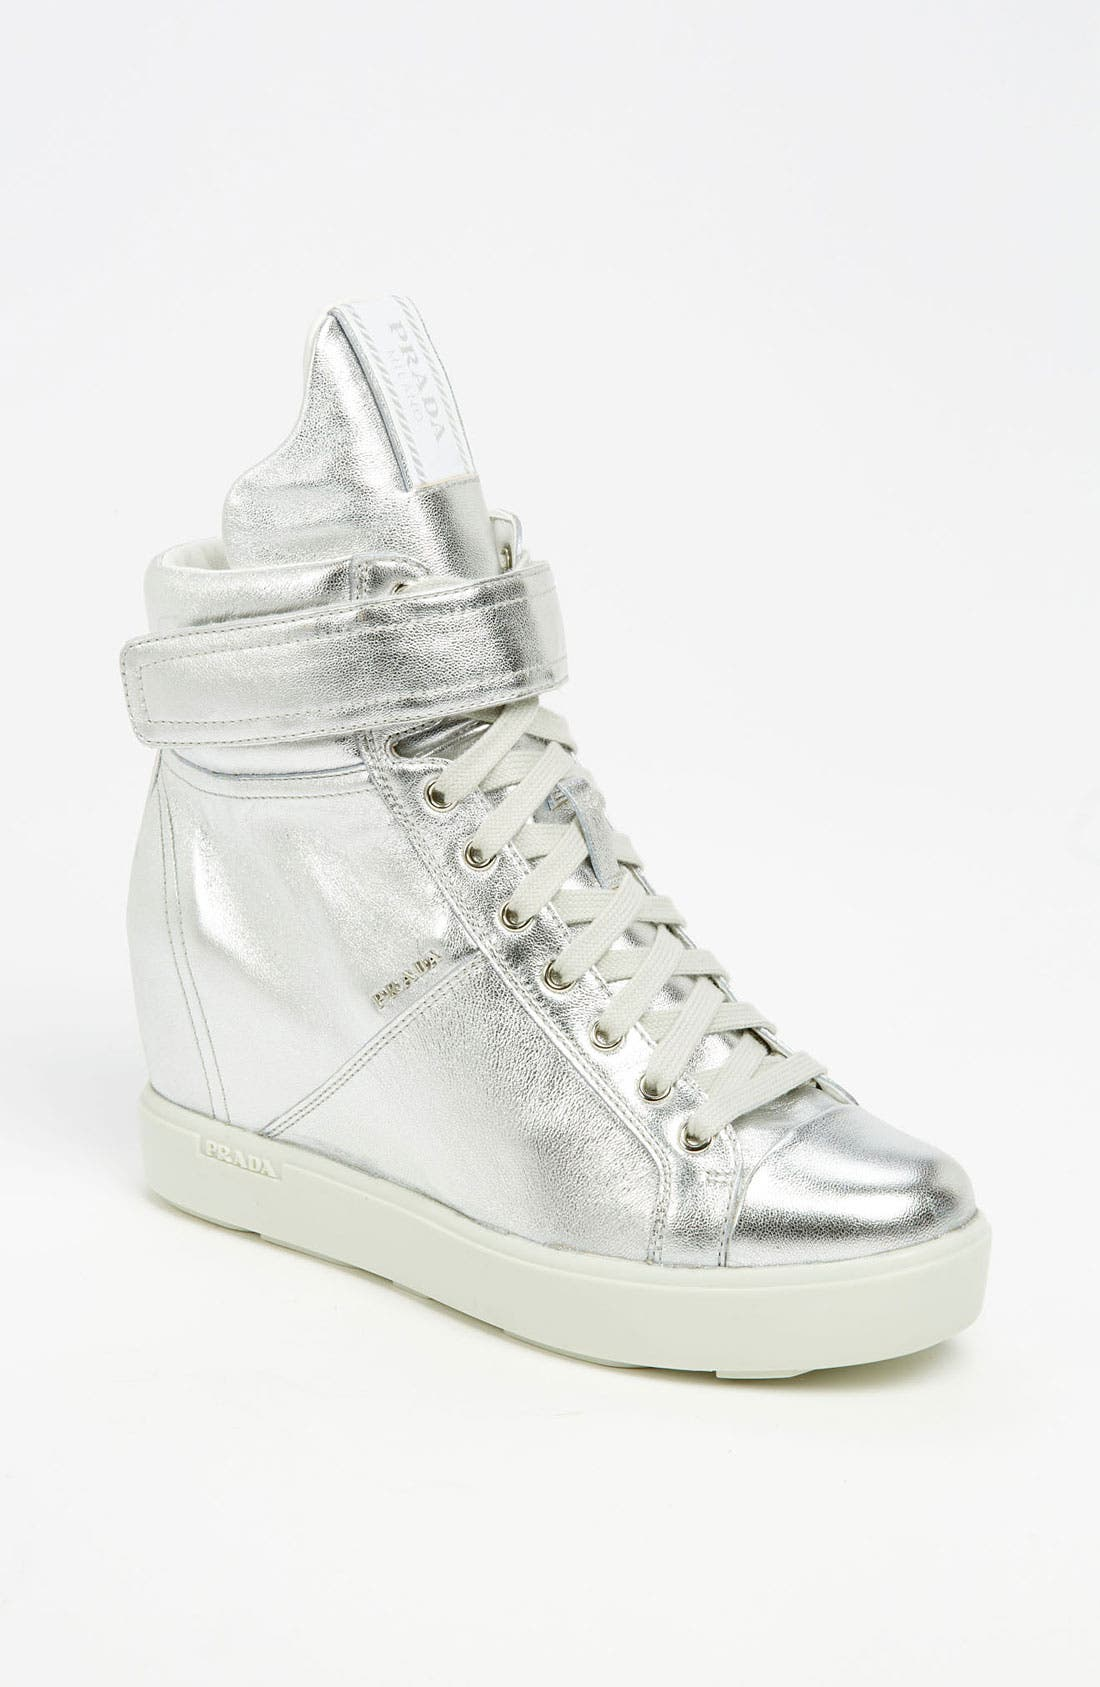 Alternate Image 1 Selected - Prada Wedge Sneaker